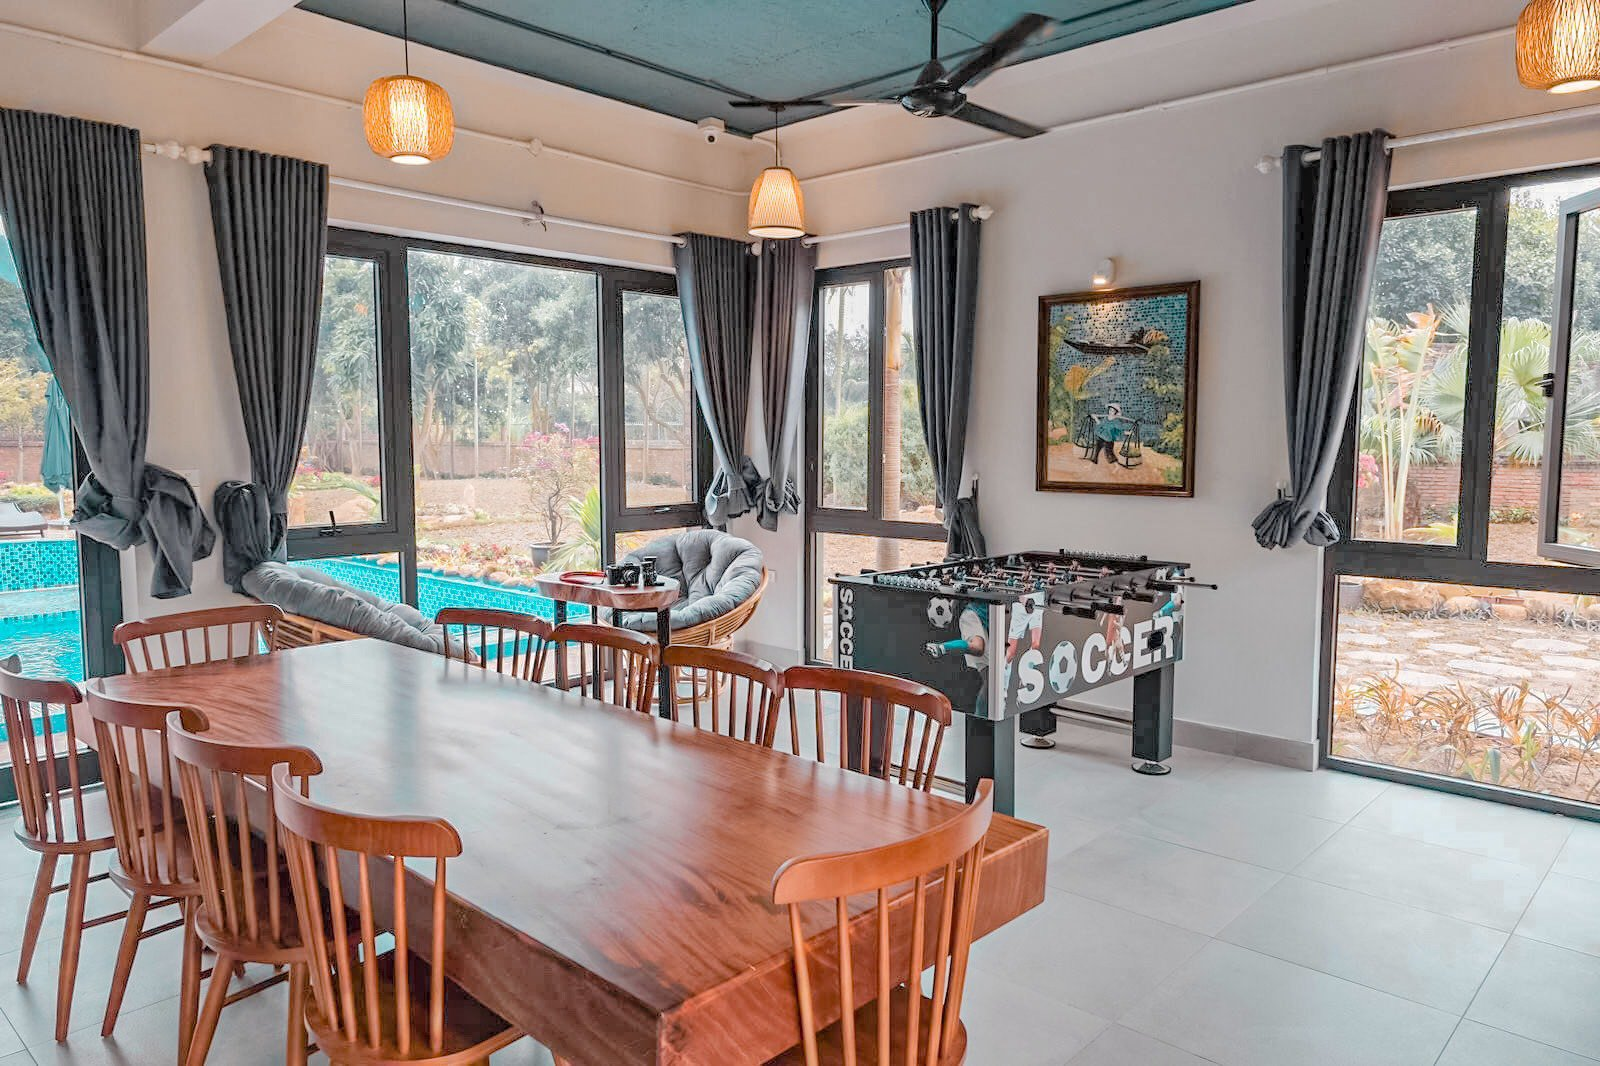 phong-an-the-bright-house-villa-homestay-soc-son-ha-noi-05